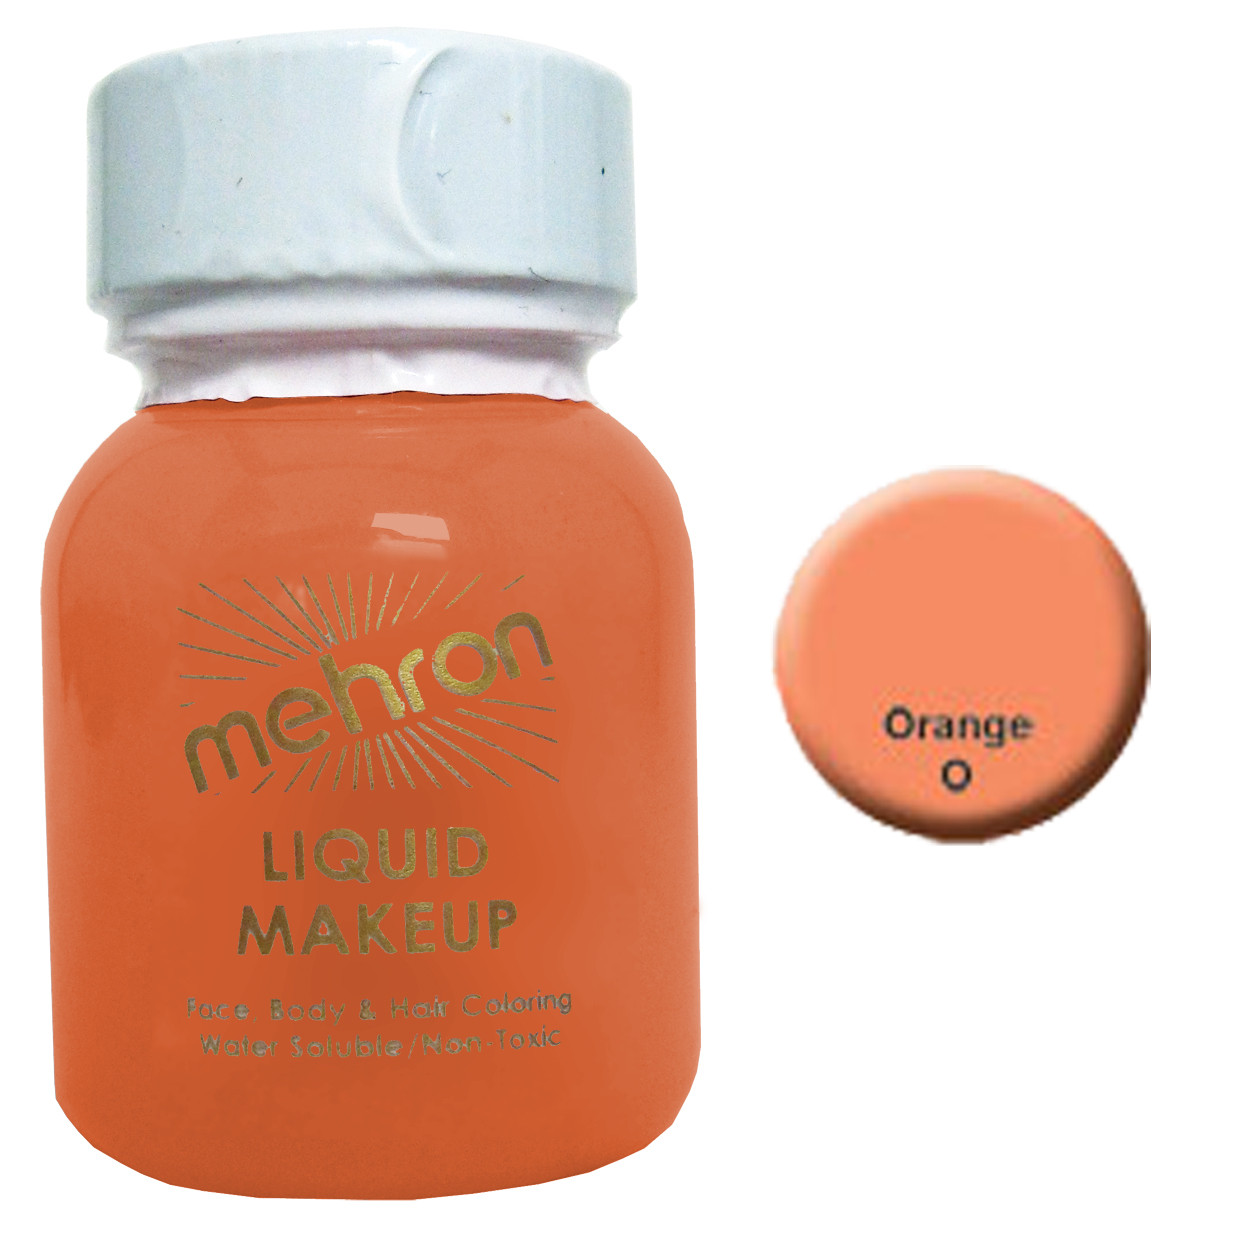 Mehron Liquid Face and Body Painting Makeup 1 oz